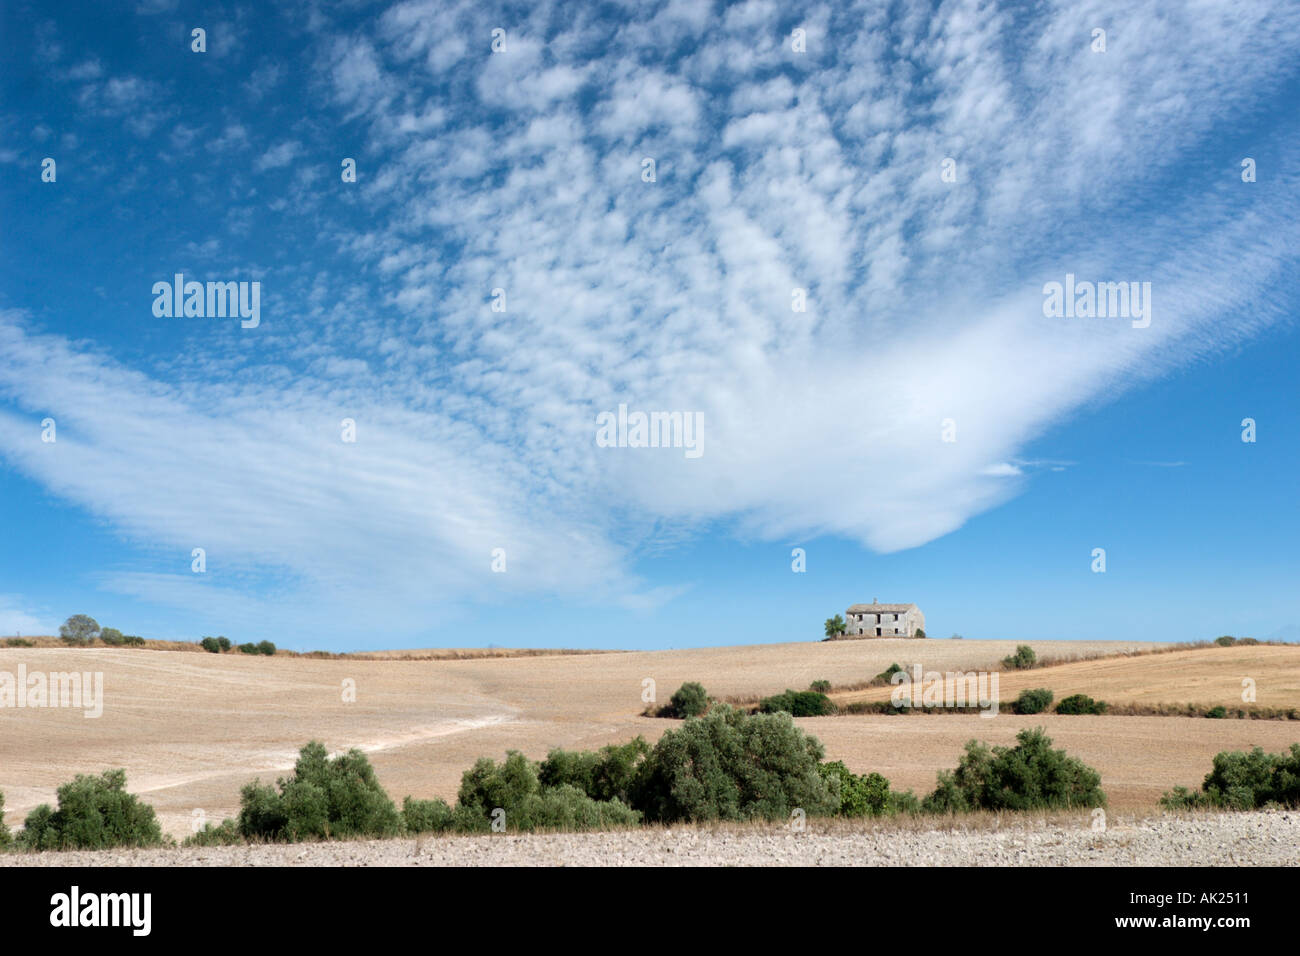 Rural landscape in the Ronda Region, Andalucia, Spain - Stock Image